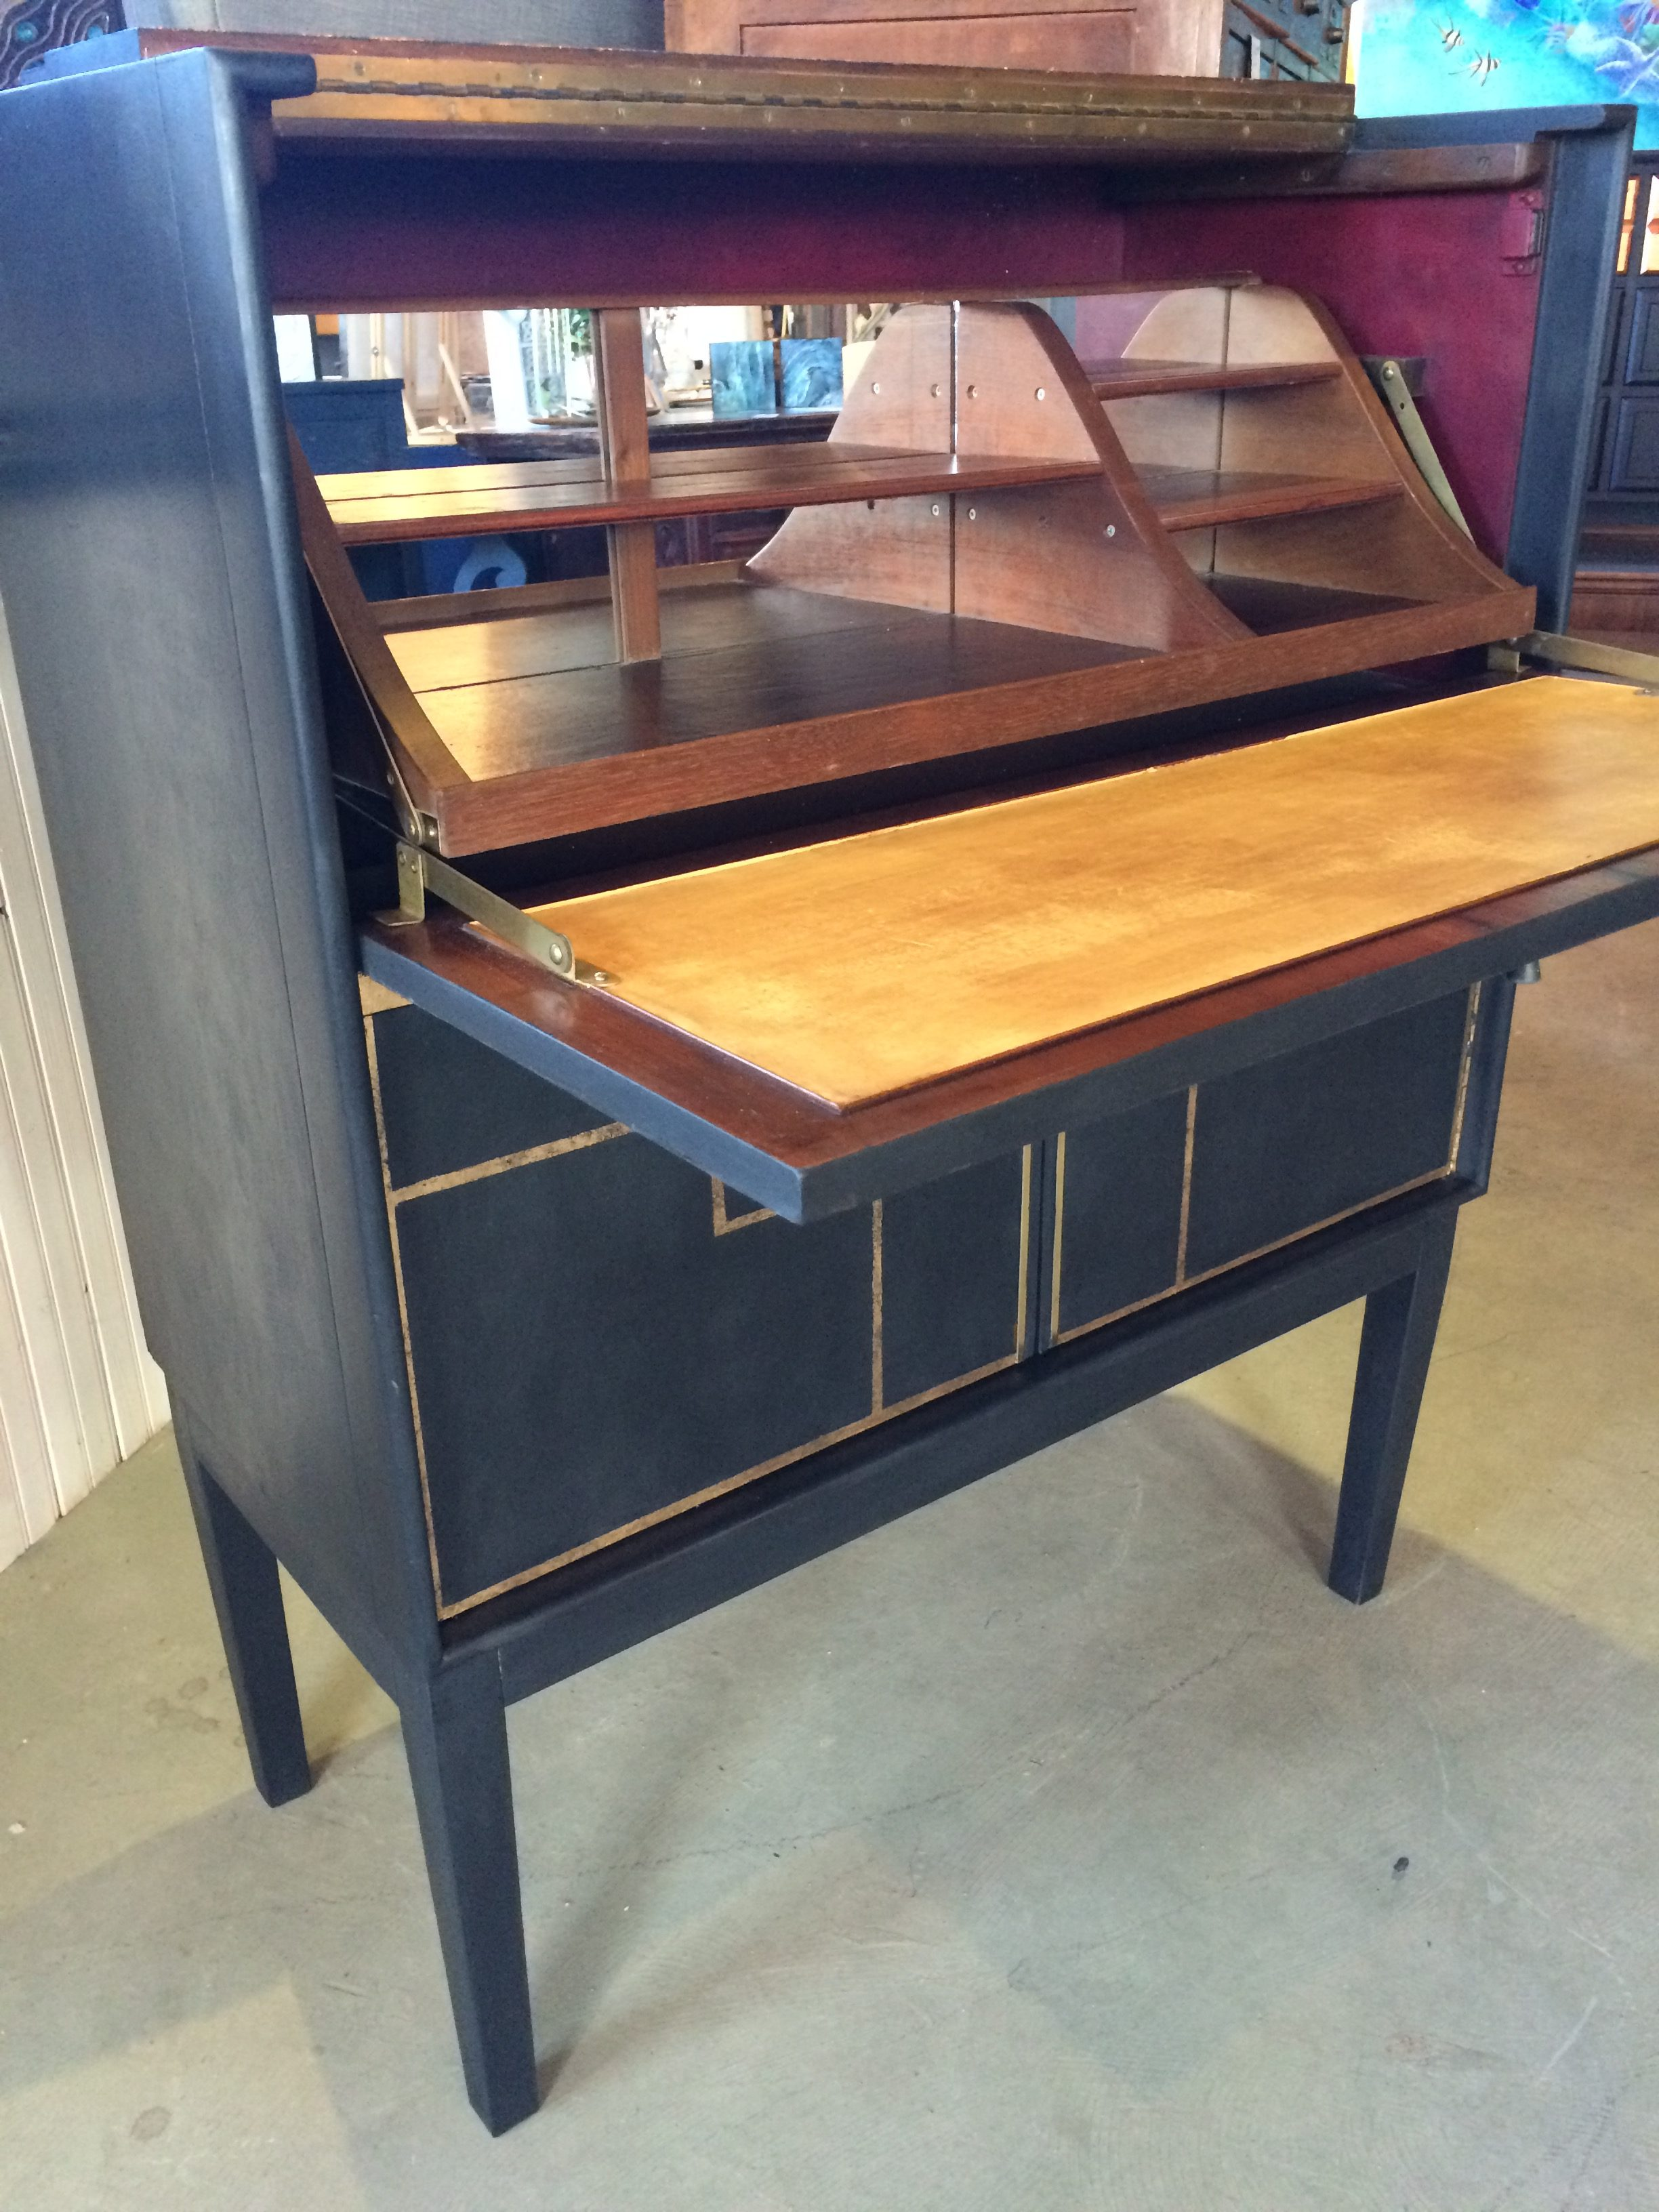 mid century modern desk with gold leafing  foiling  arthaus - mid century modern desk with gold leafing  foiling